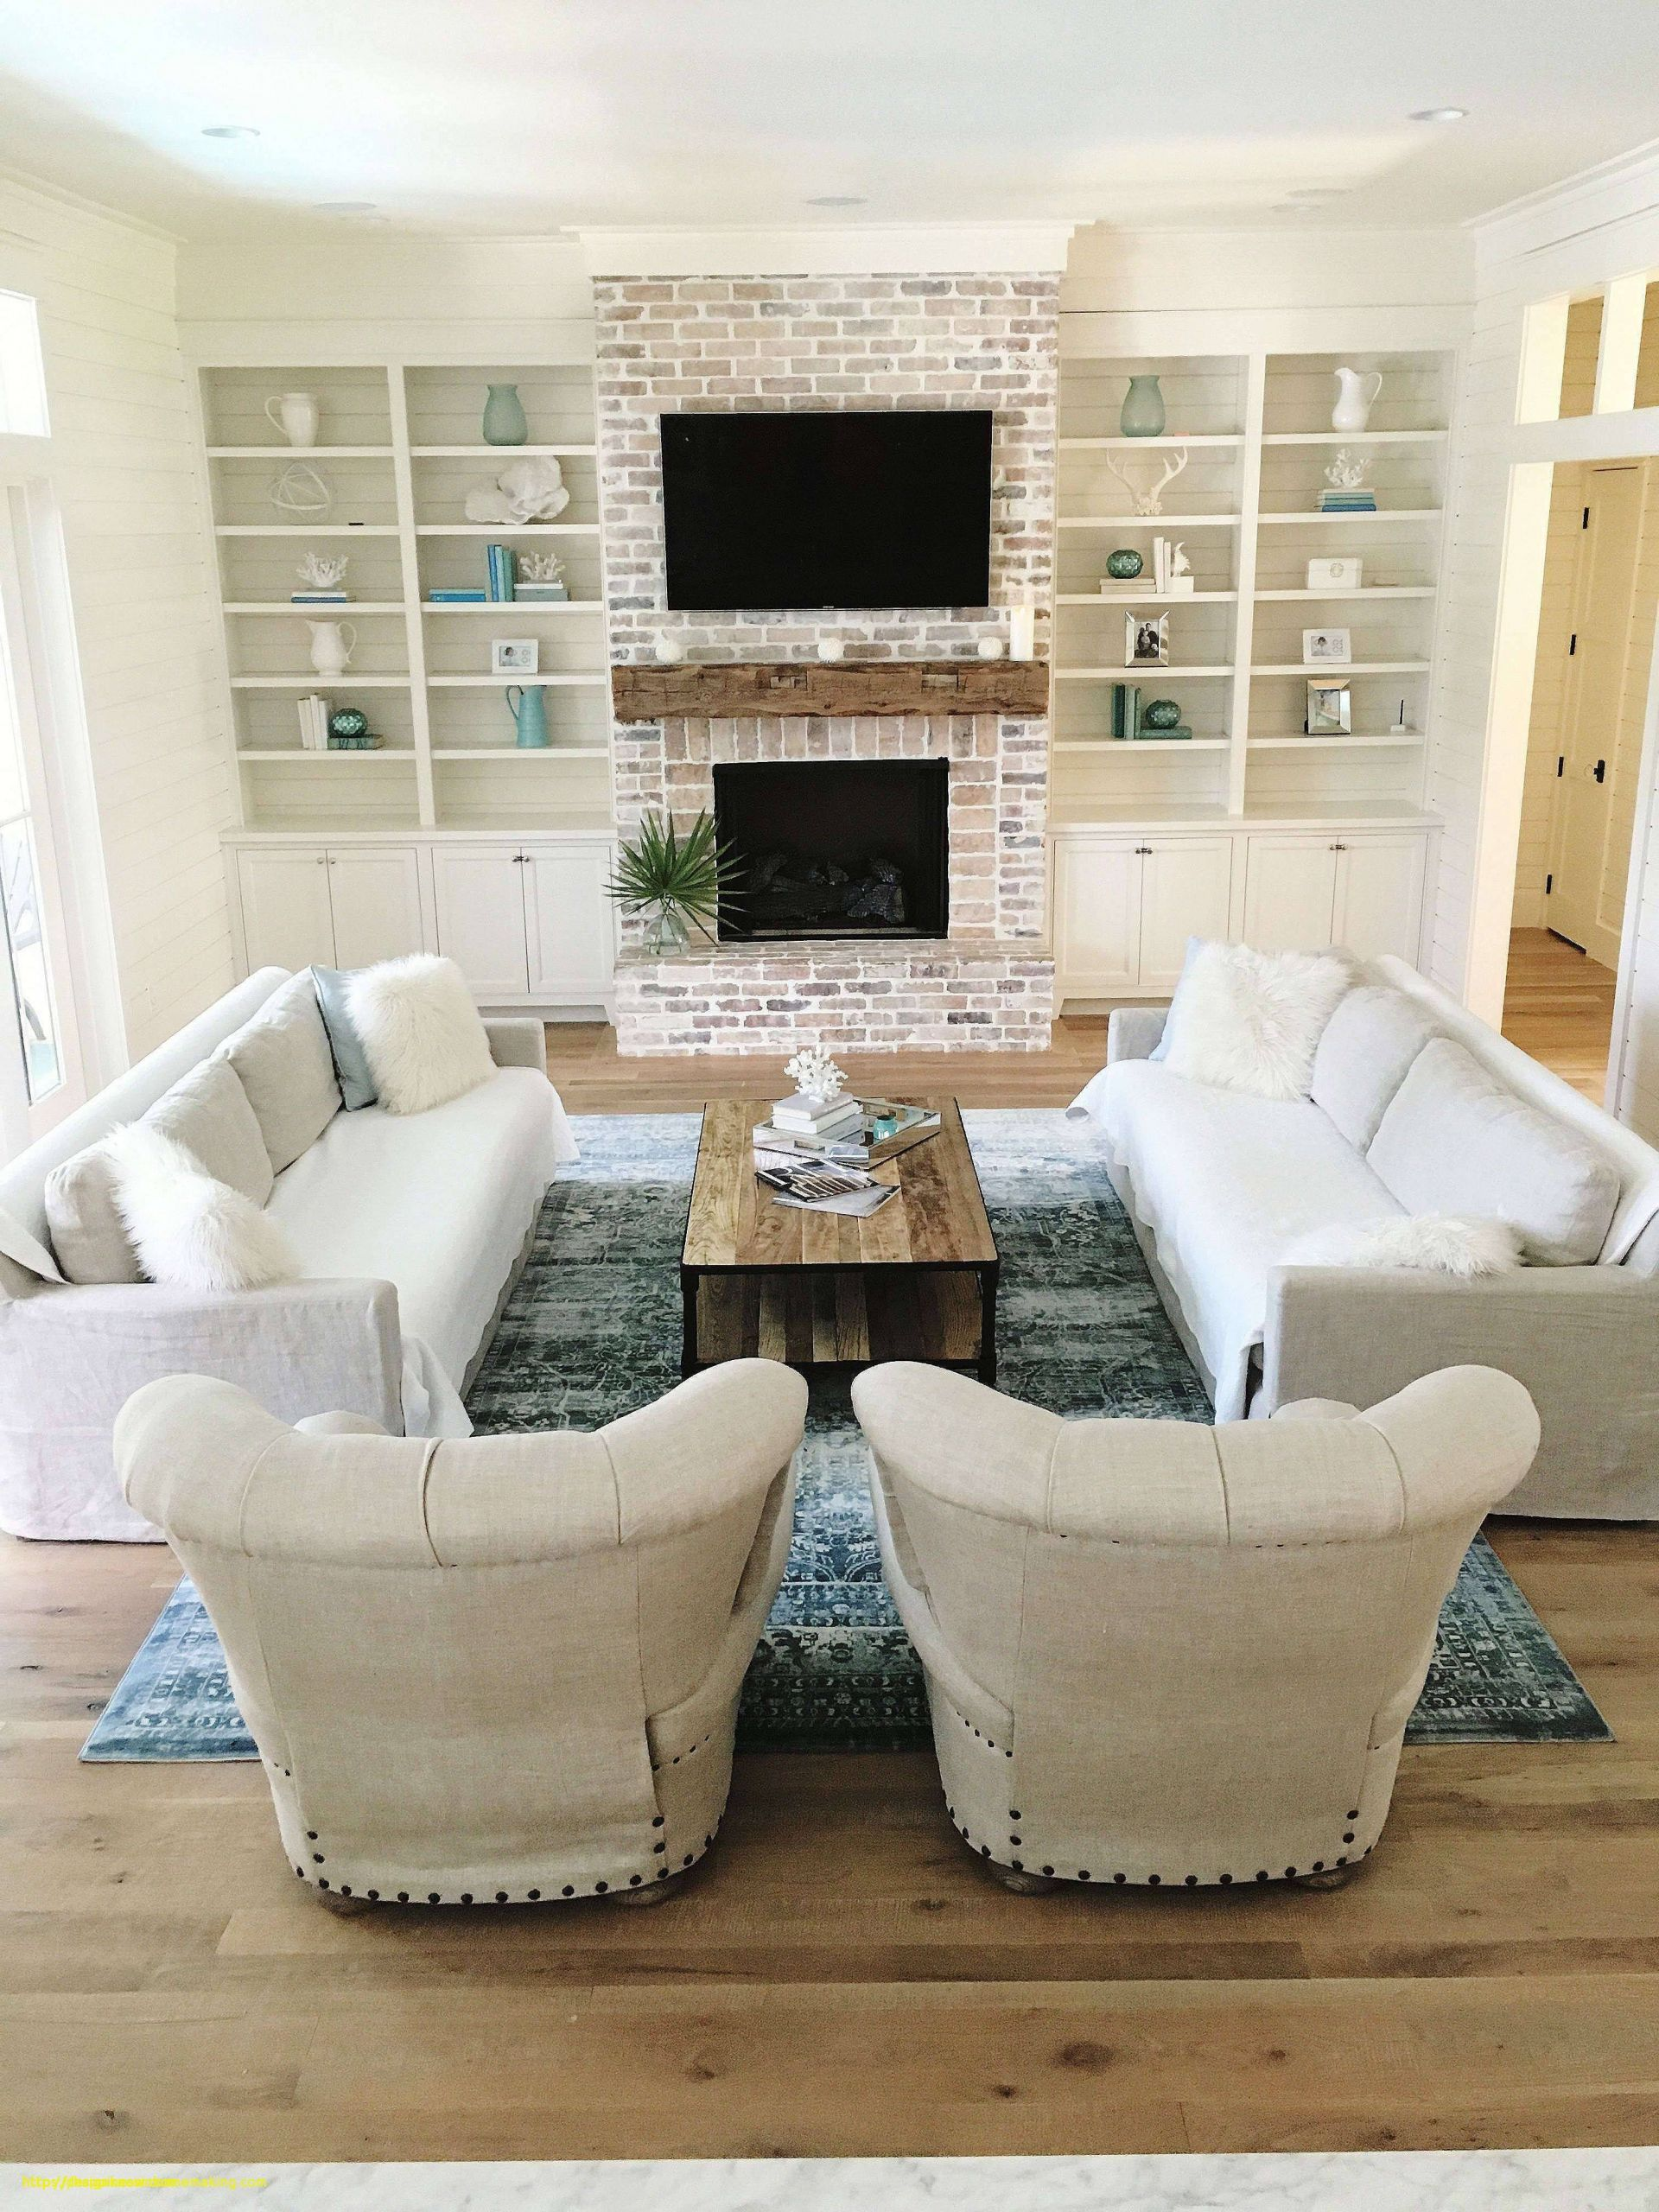 Best Living Room Design Unique Best Modern Interior Design for Small Spaces